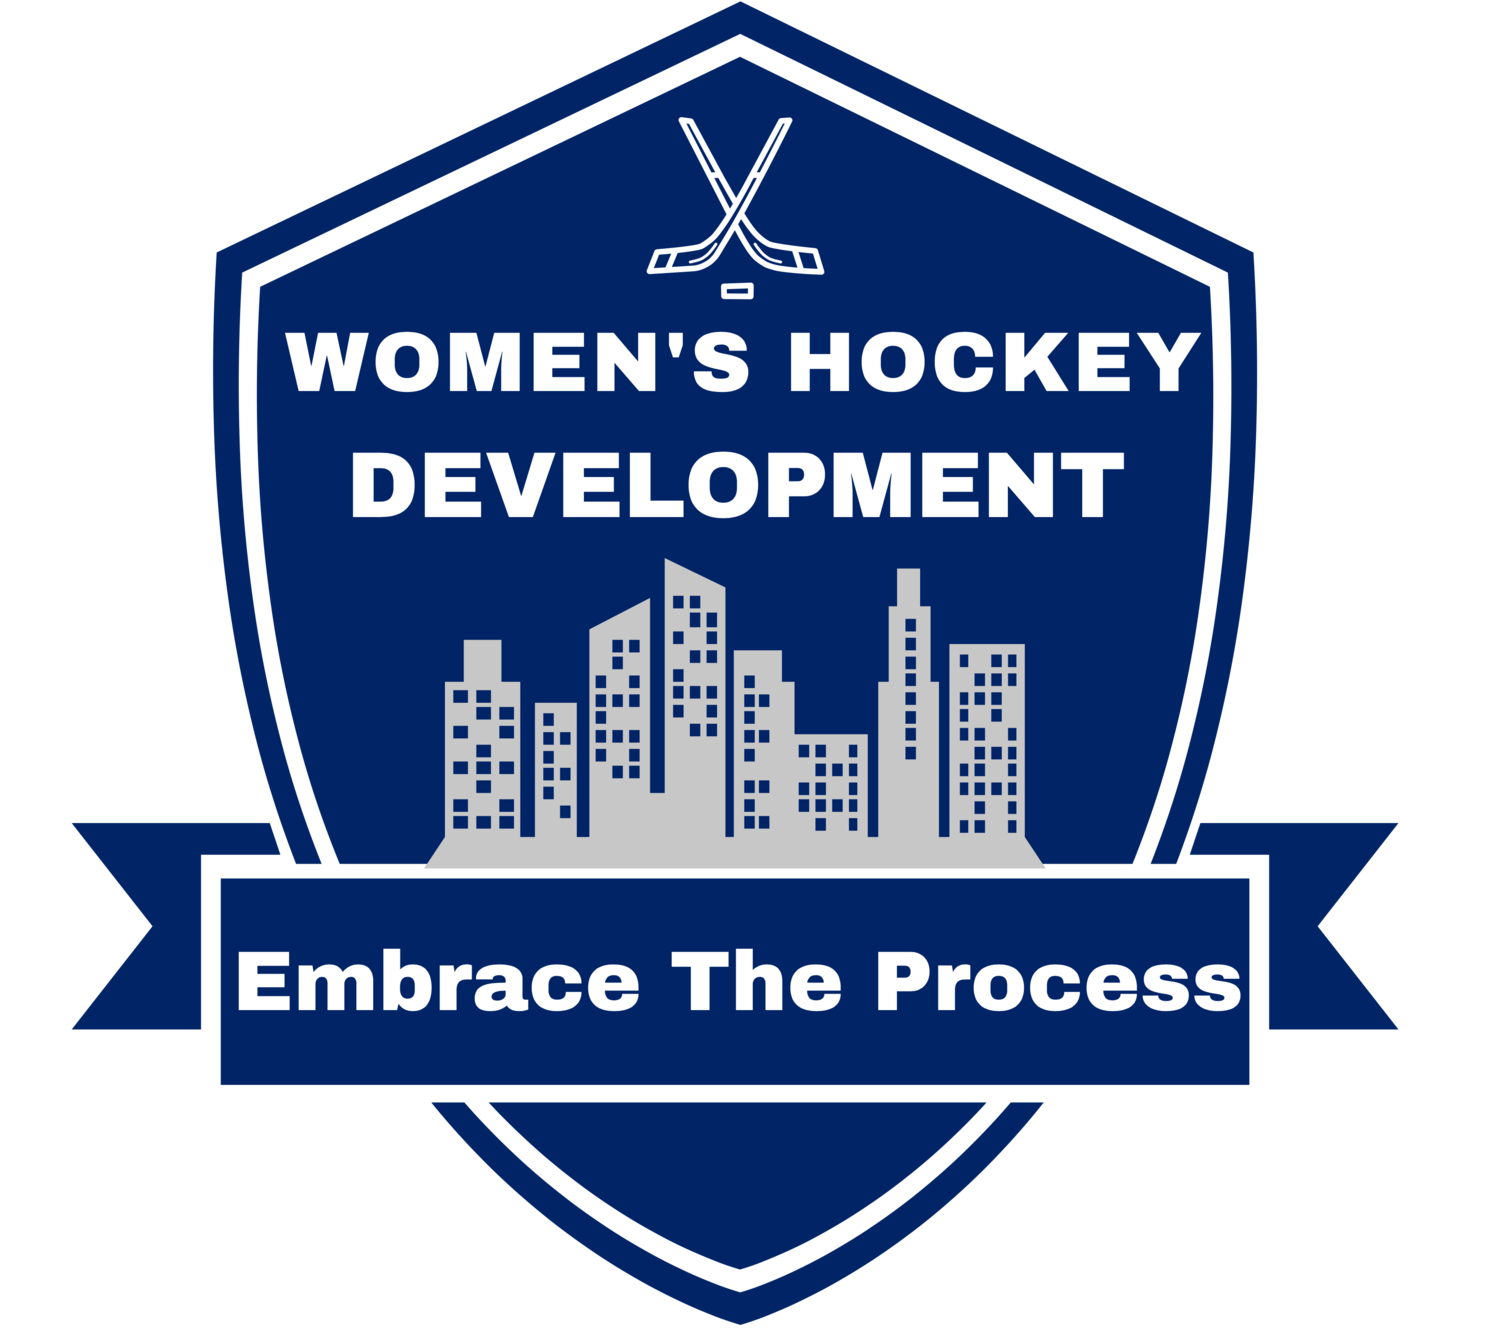 Women's Hockey Development